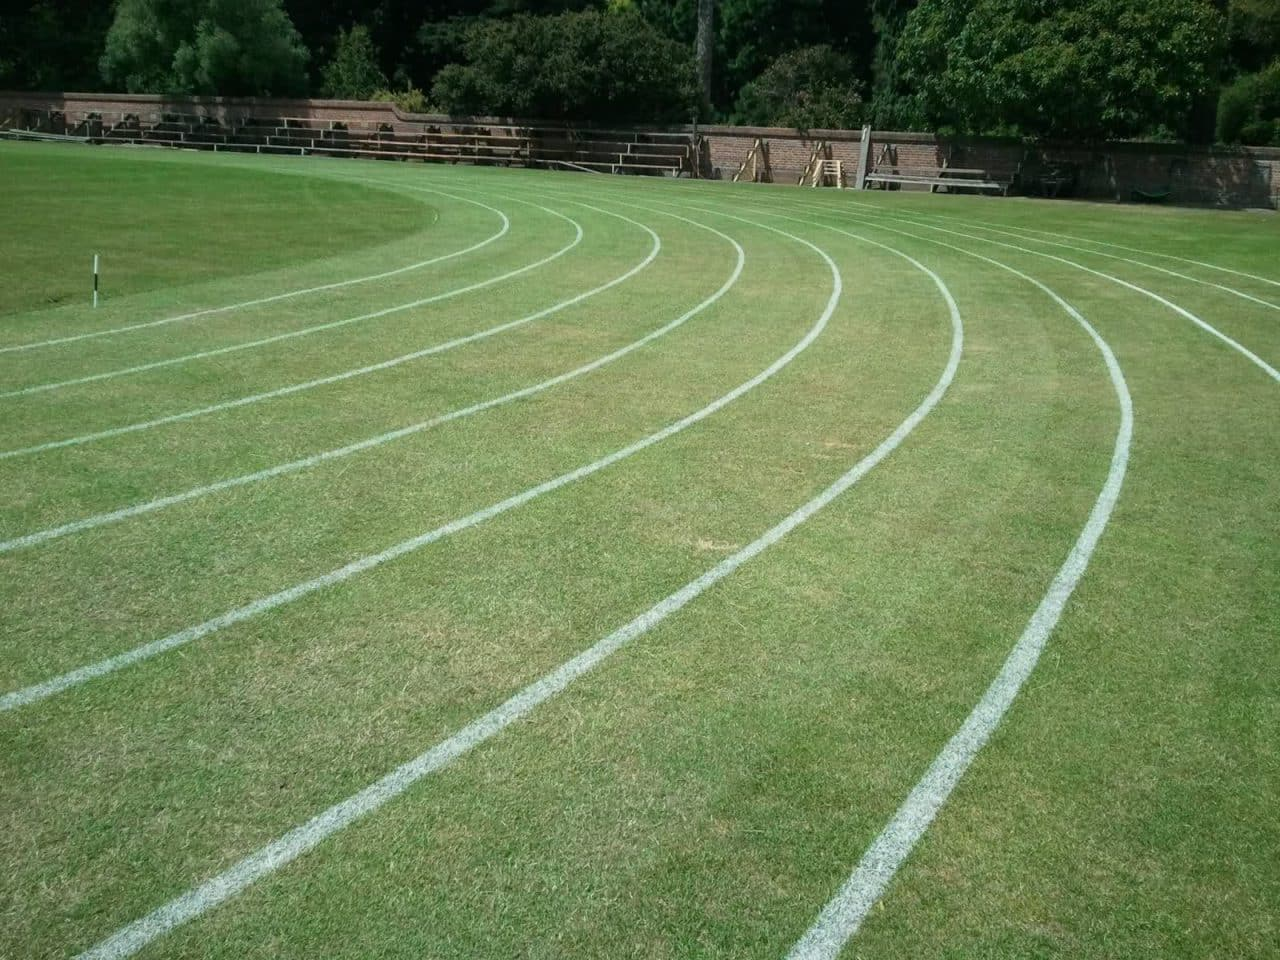 Calls for drug testing at school athletics events after 5 YEAR OLD runs 100m in 4.2 SECONDS